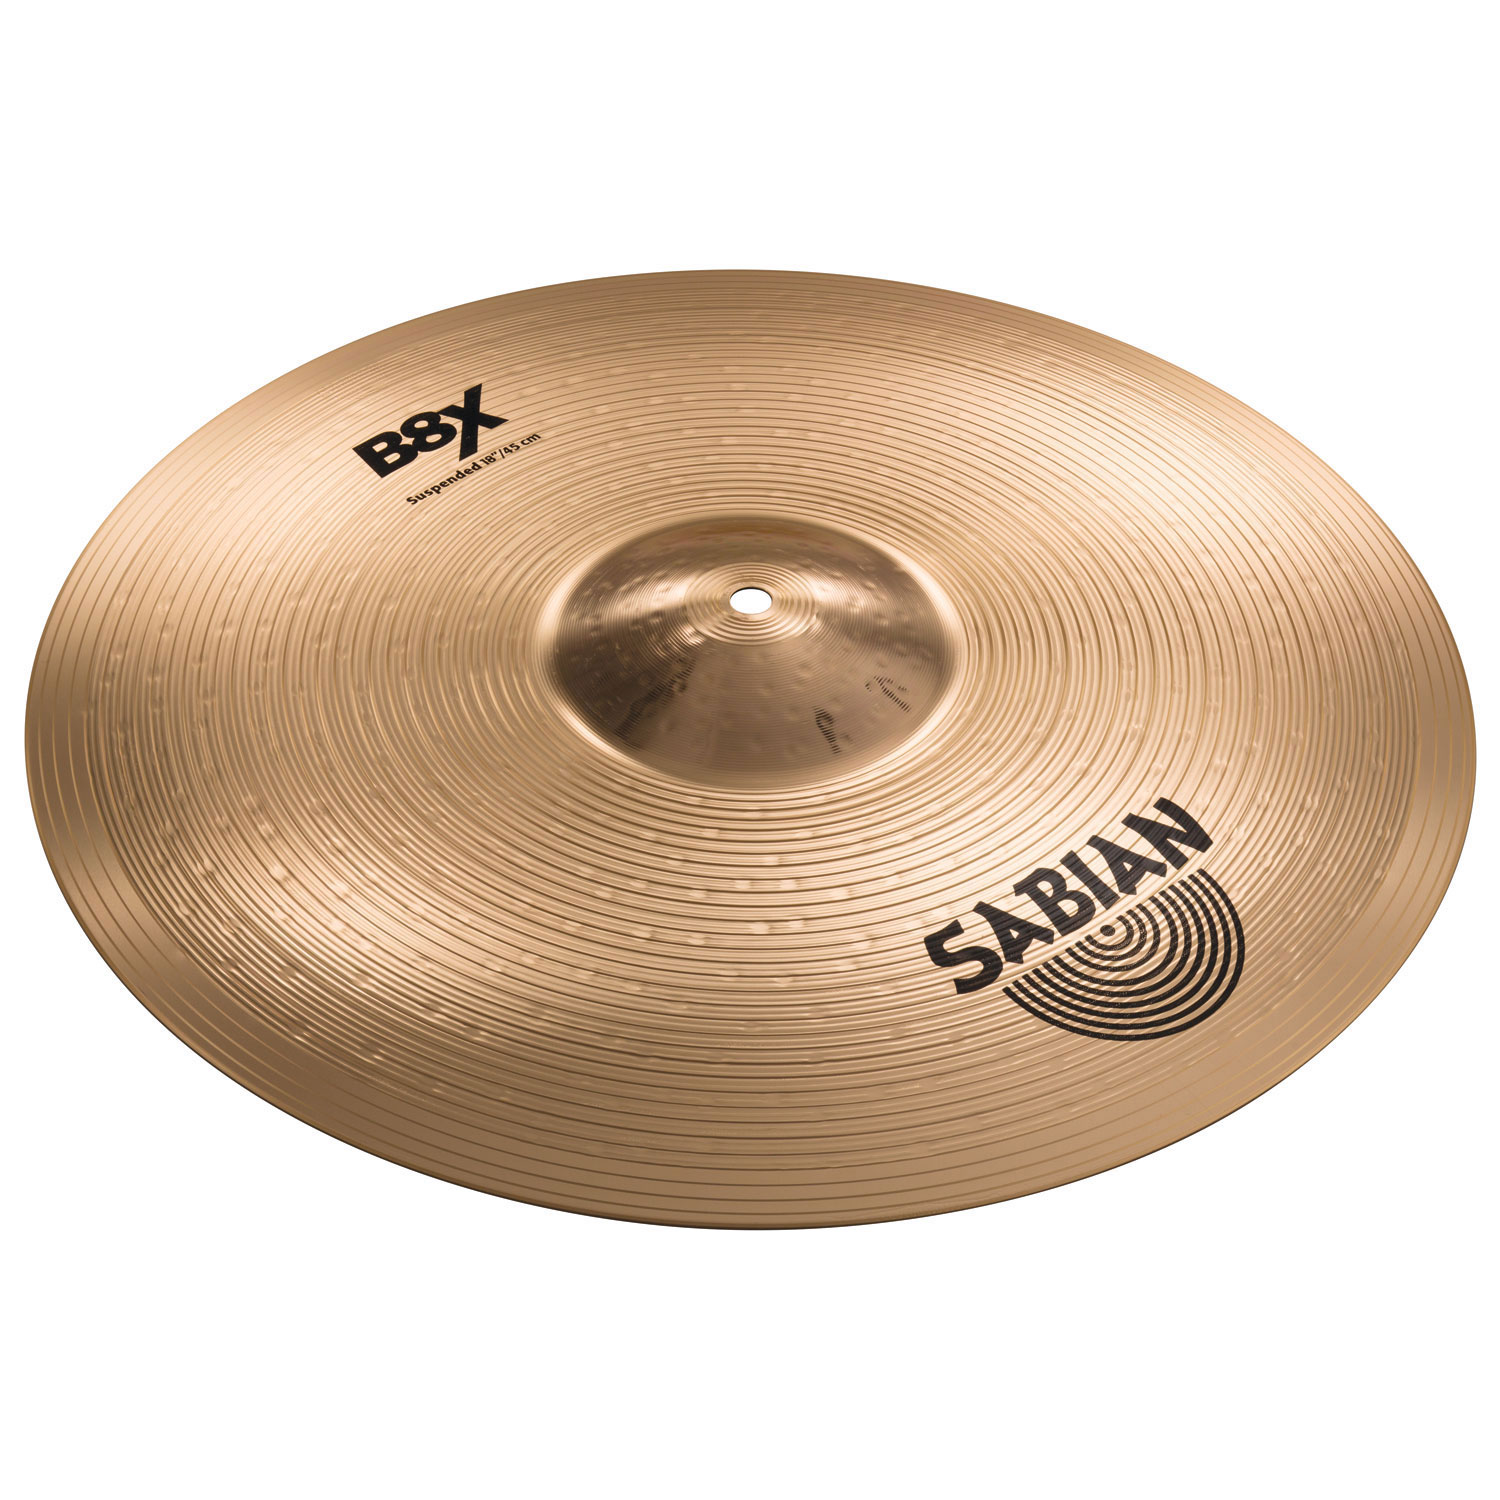 "Sabian 18"" B8X Suspended Cymbal"